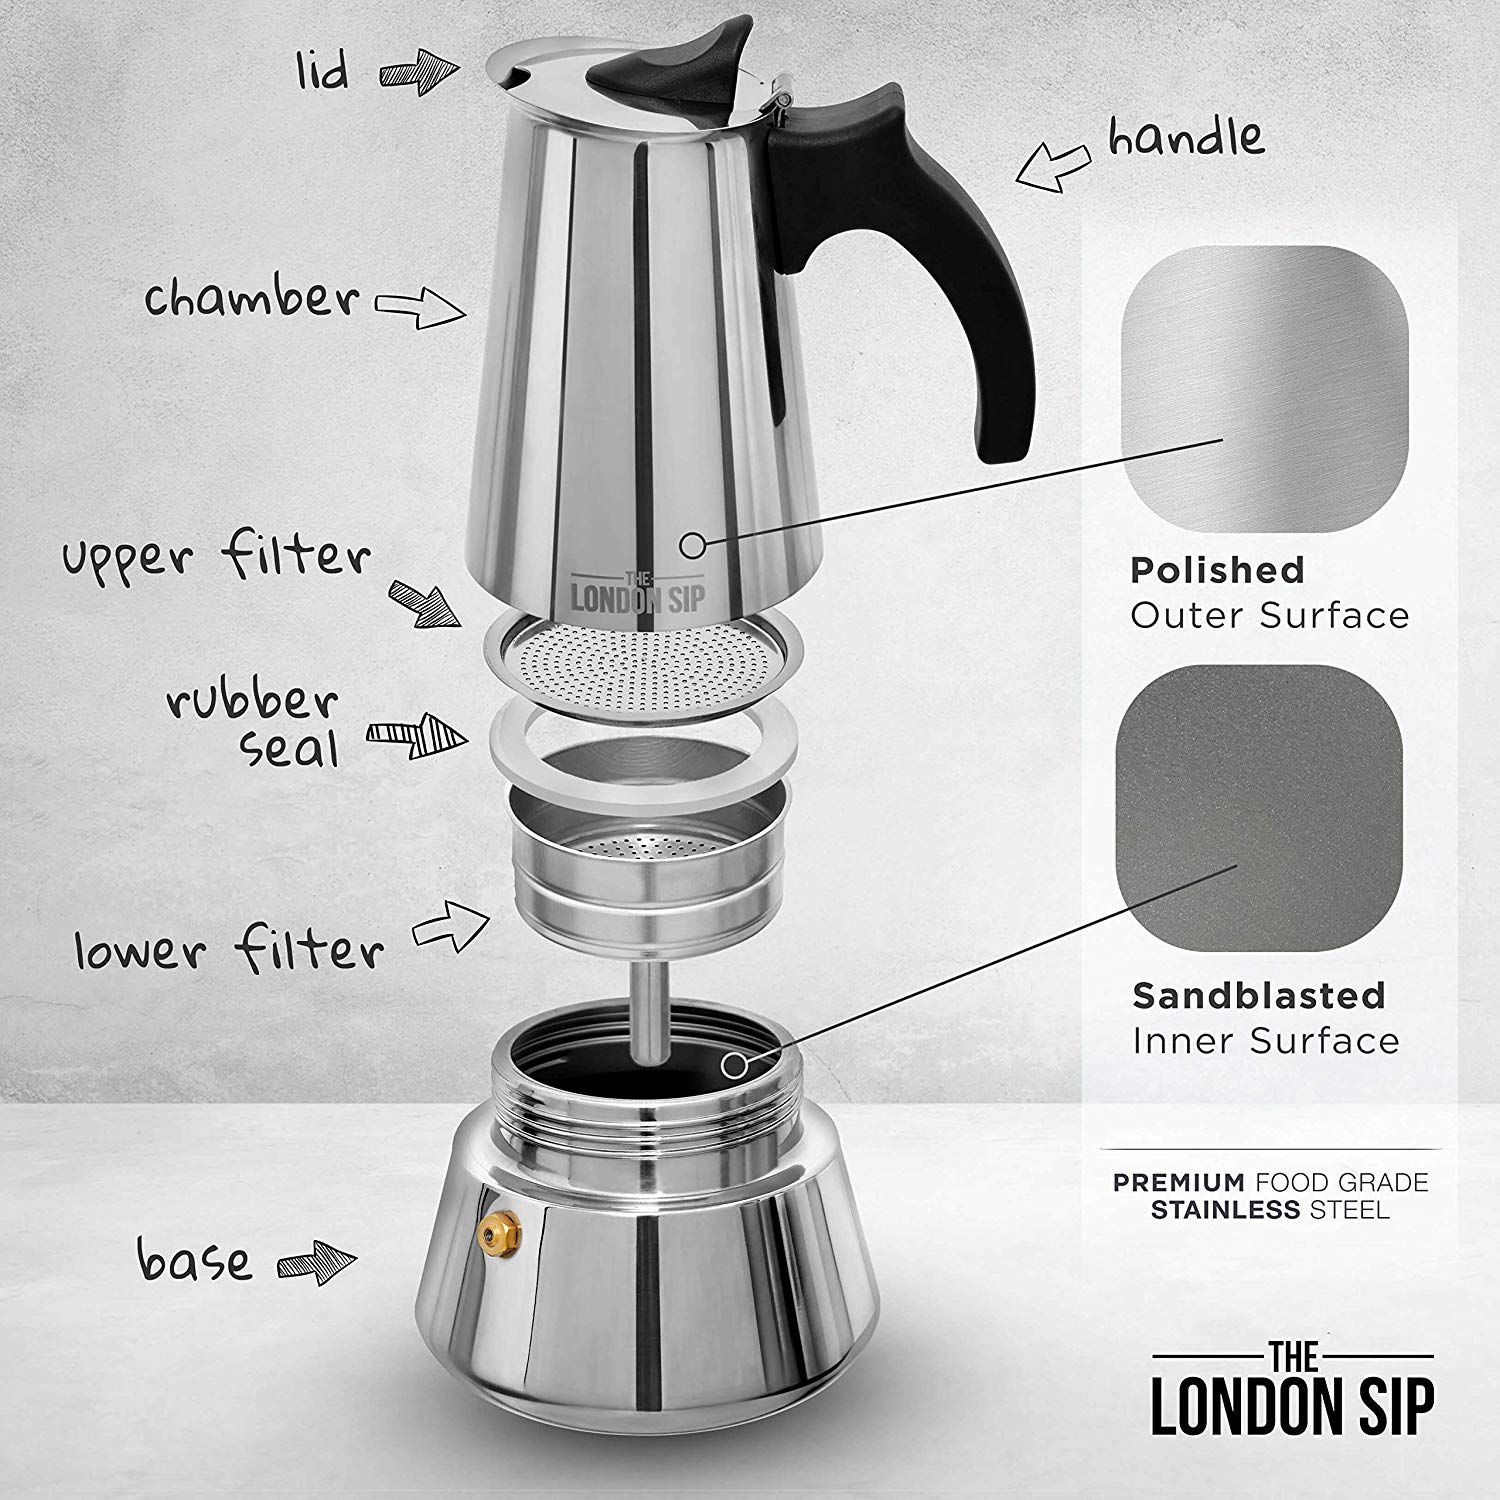 Stainless Steel Induction Stovetop Espresso Maker 6 Cup